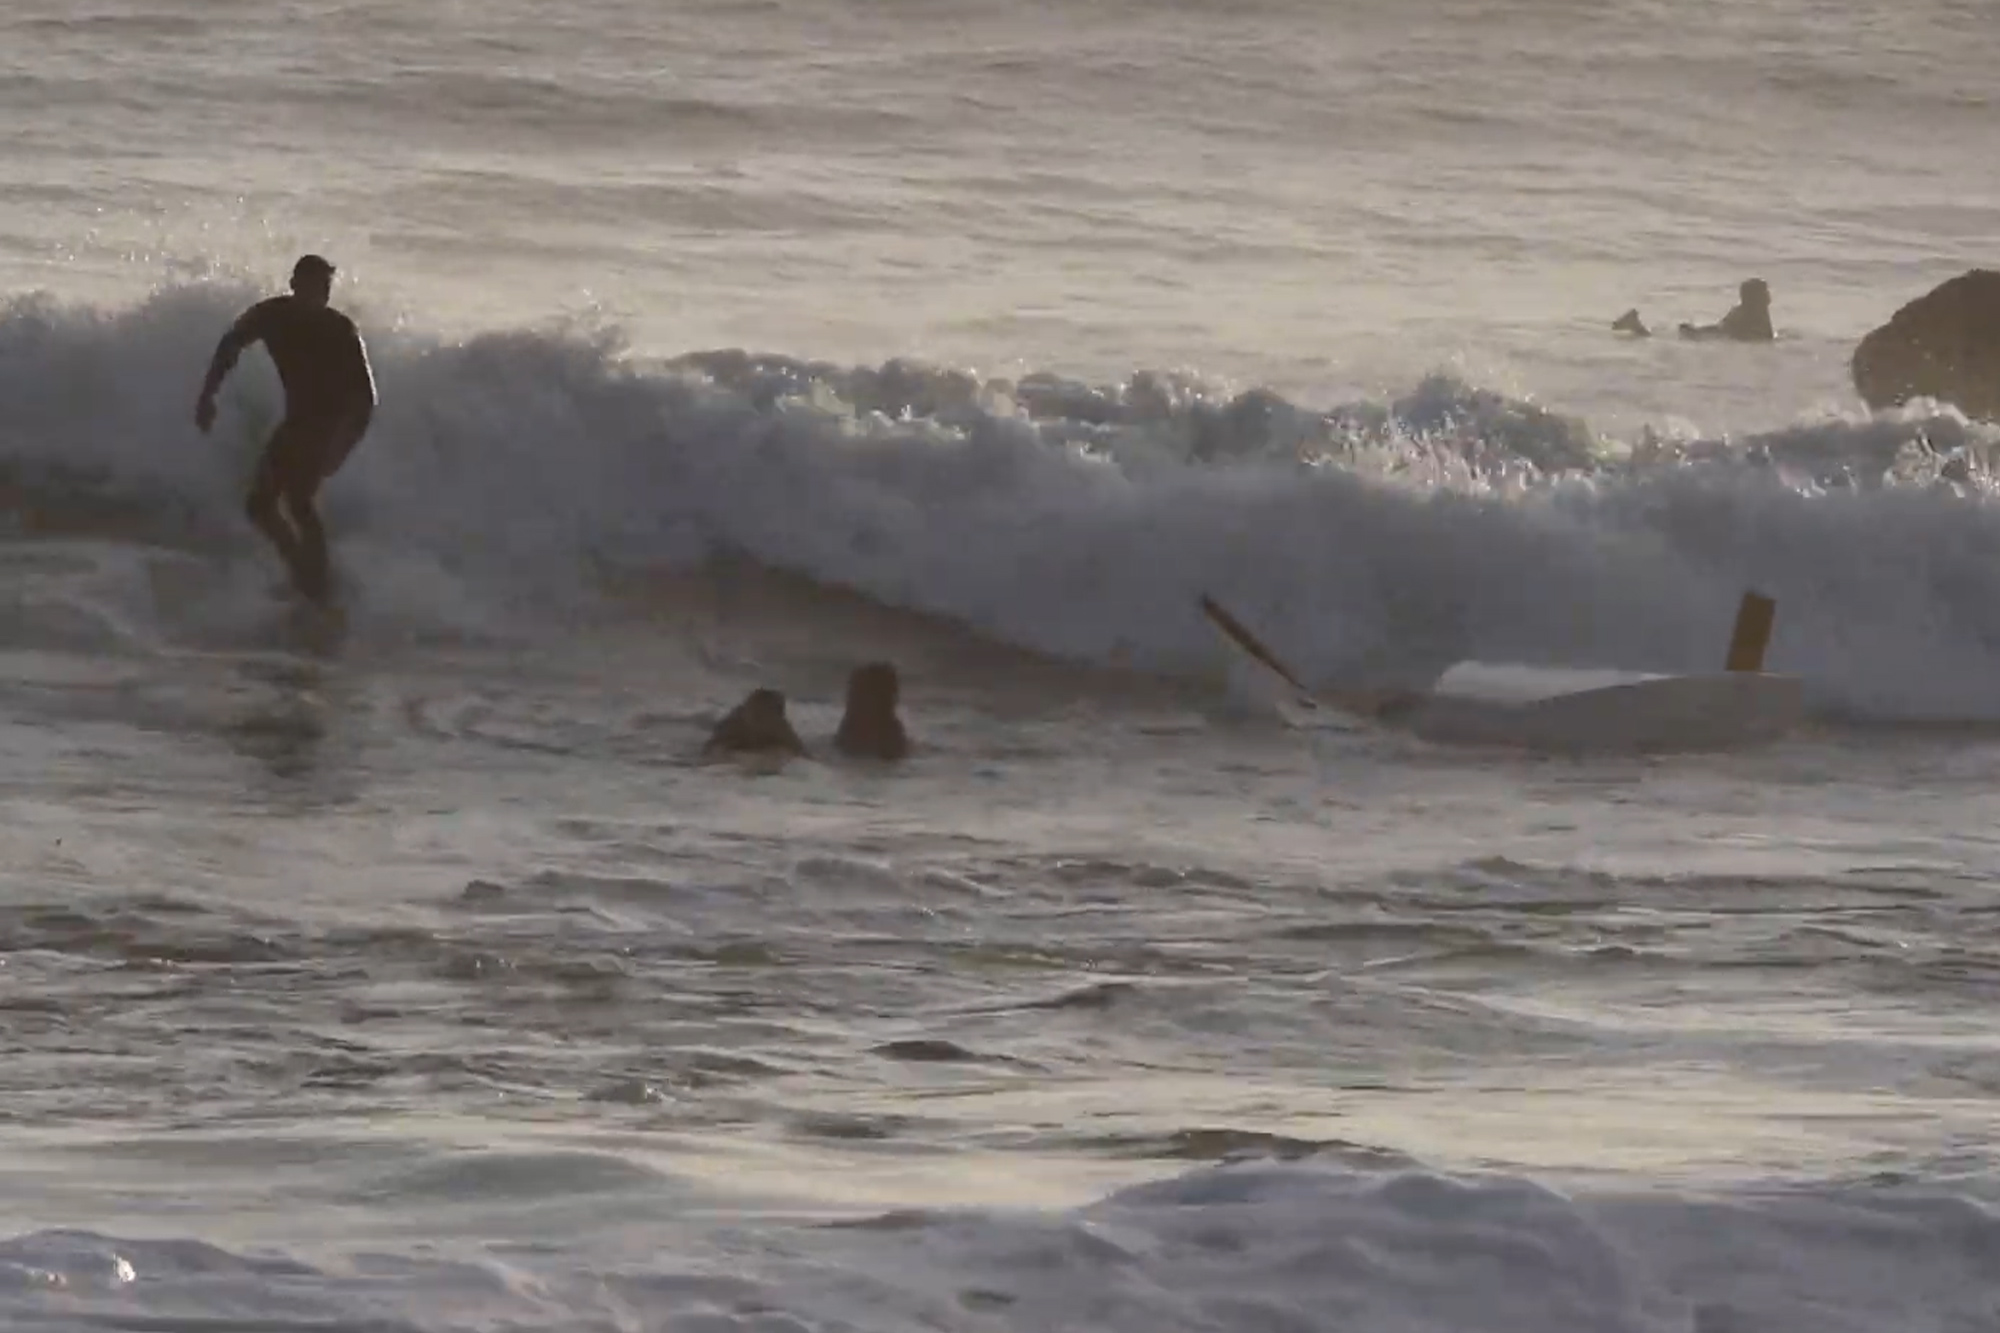 'Students overboard!': Surfers save the day after sailboats capsize (Video)